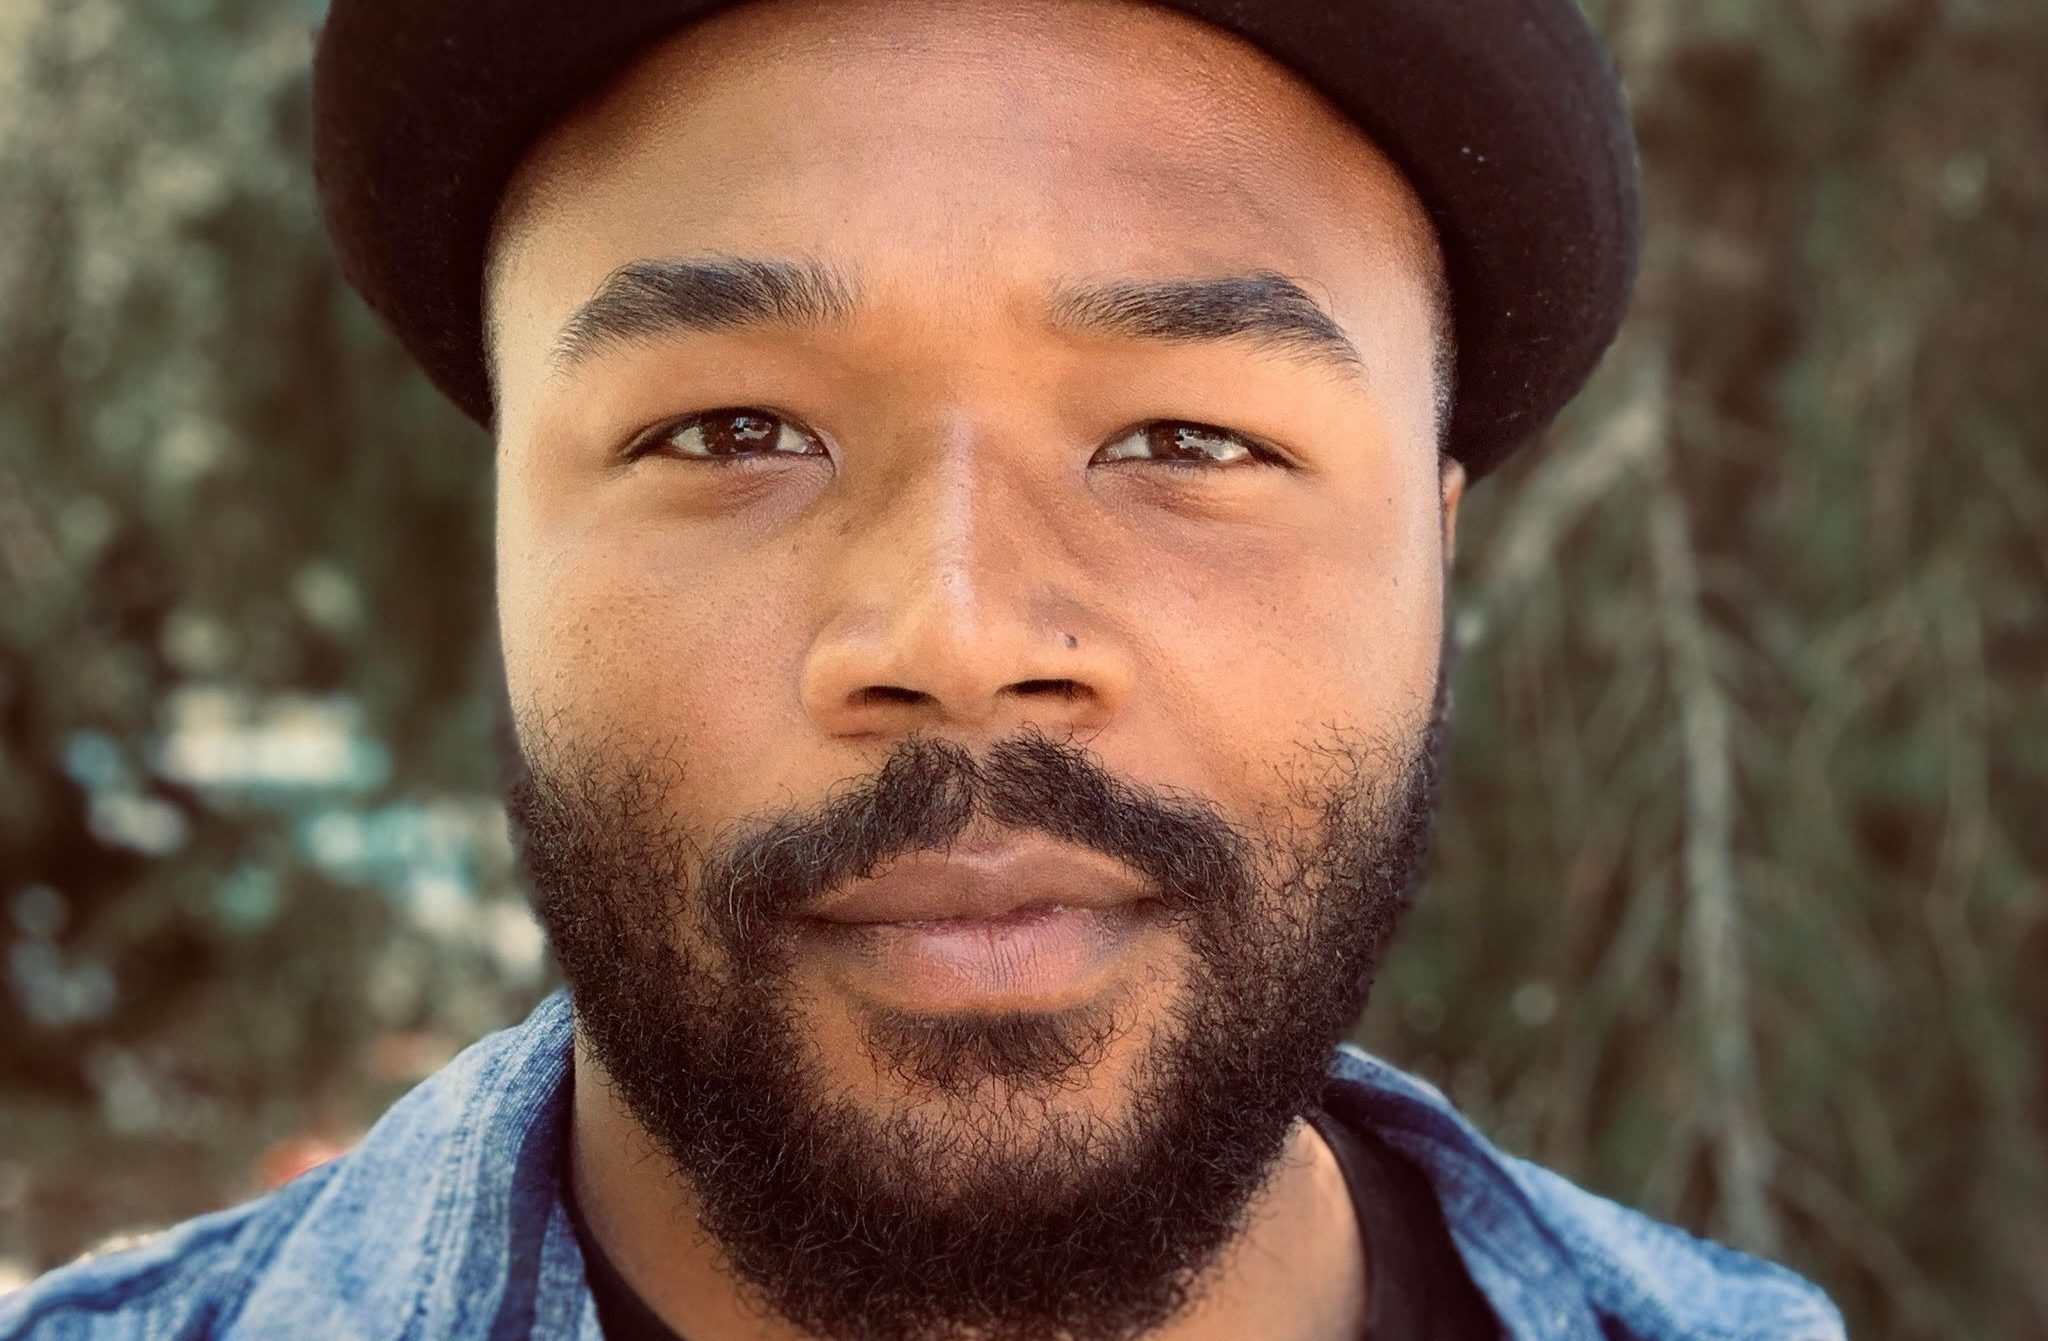 """'Canvas' Director Frank E. Abney III Talks First Time Seeing Himself On Screen, Crafting """"Therapeutic"""" Animated Short & His Mission In Transitioning To Features"""